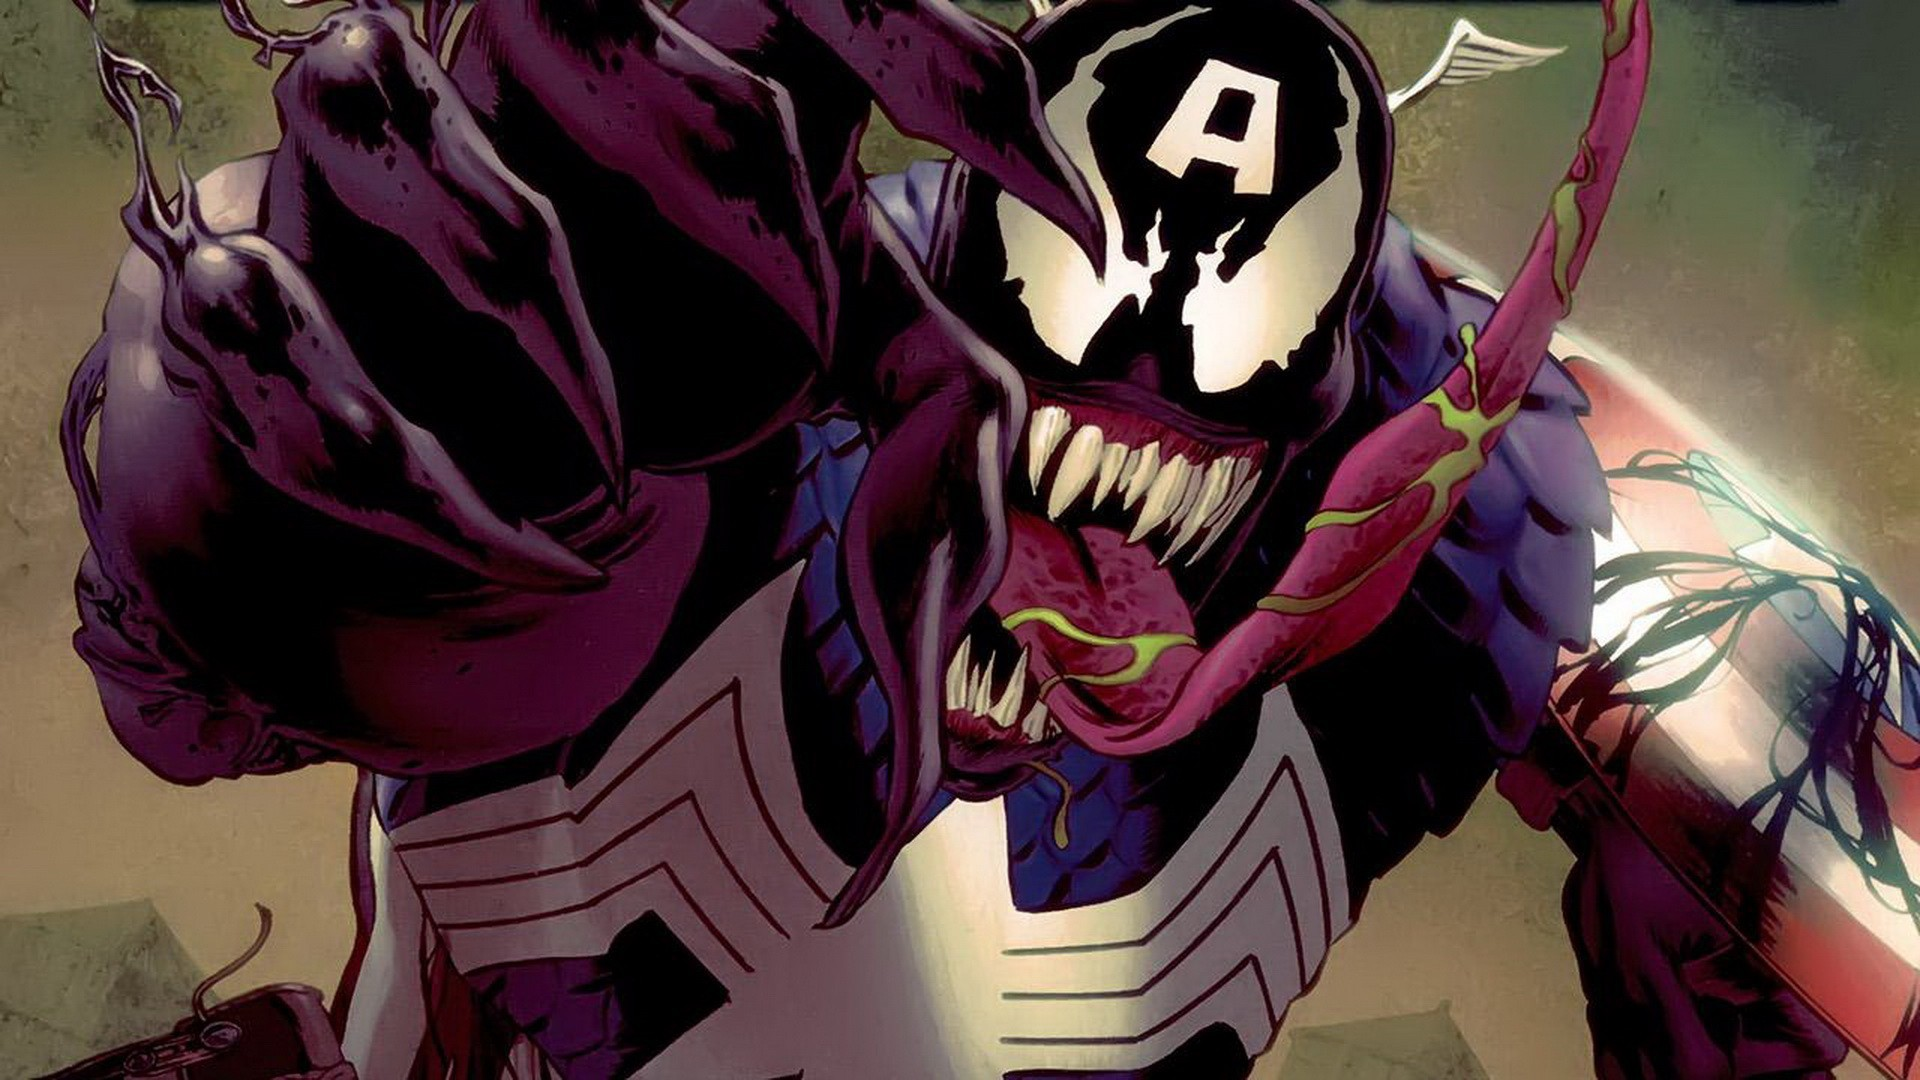 1920x1080 Comics Venom Captain America villains Marvel Comics wallpaper |  |  223378 | WallpaperUP